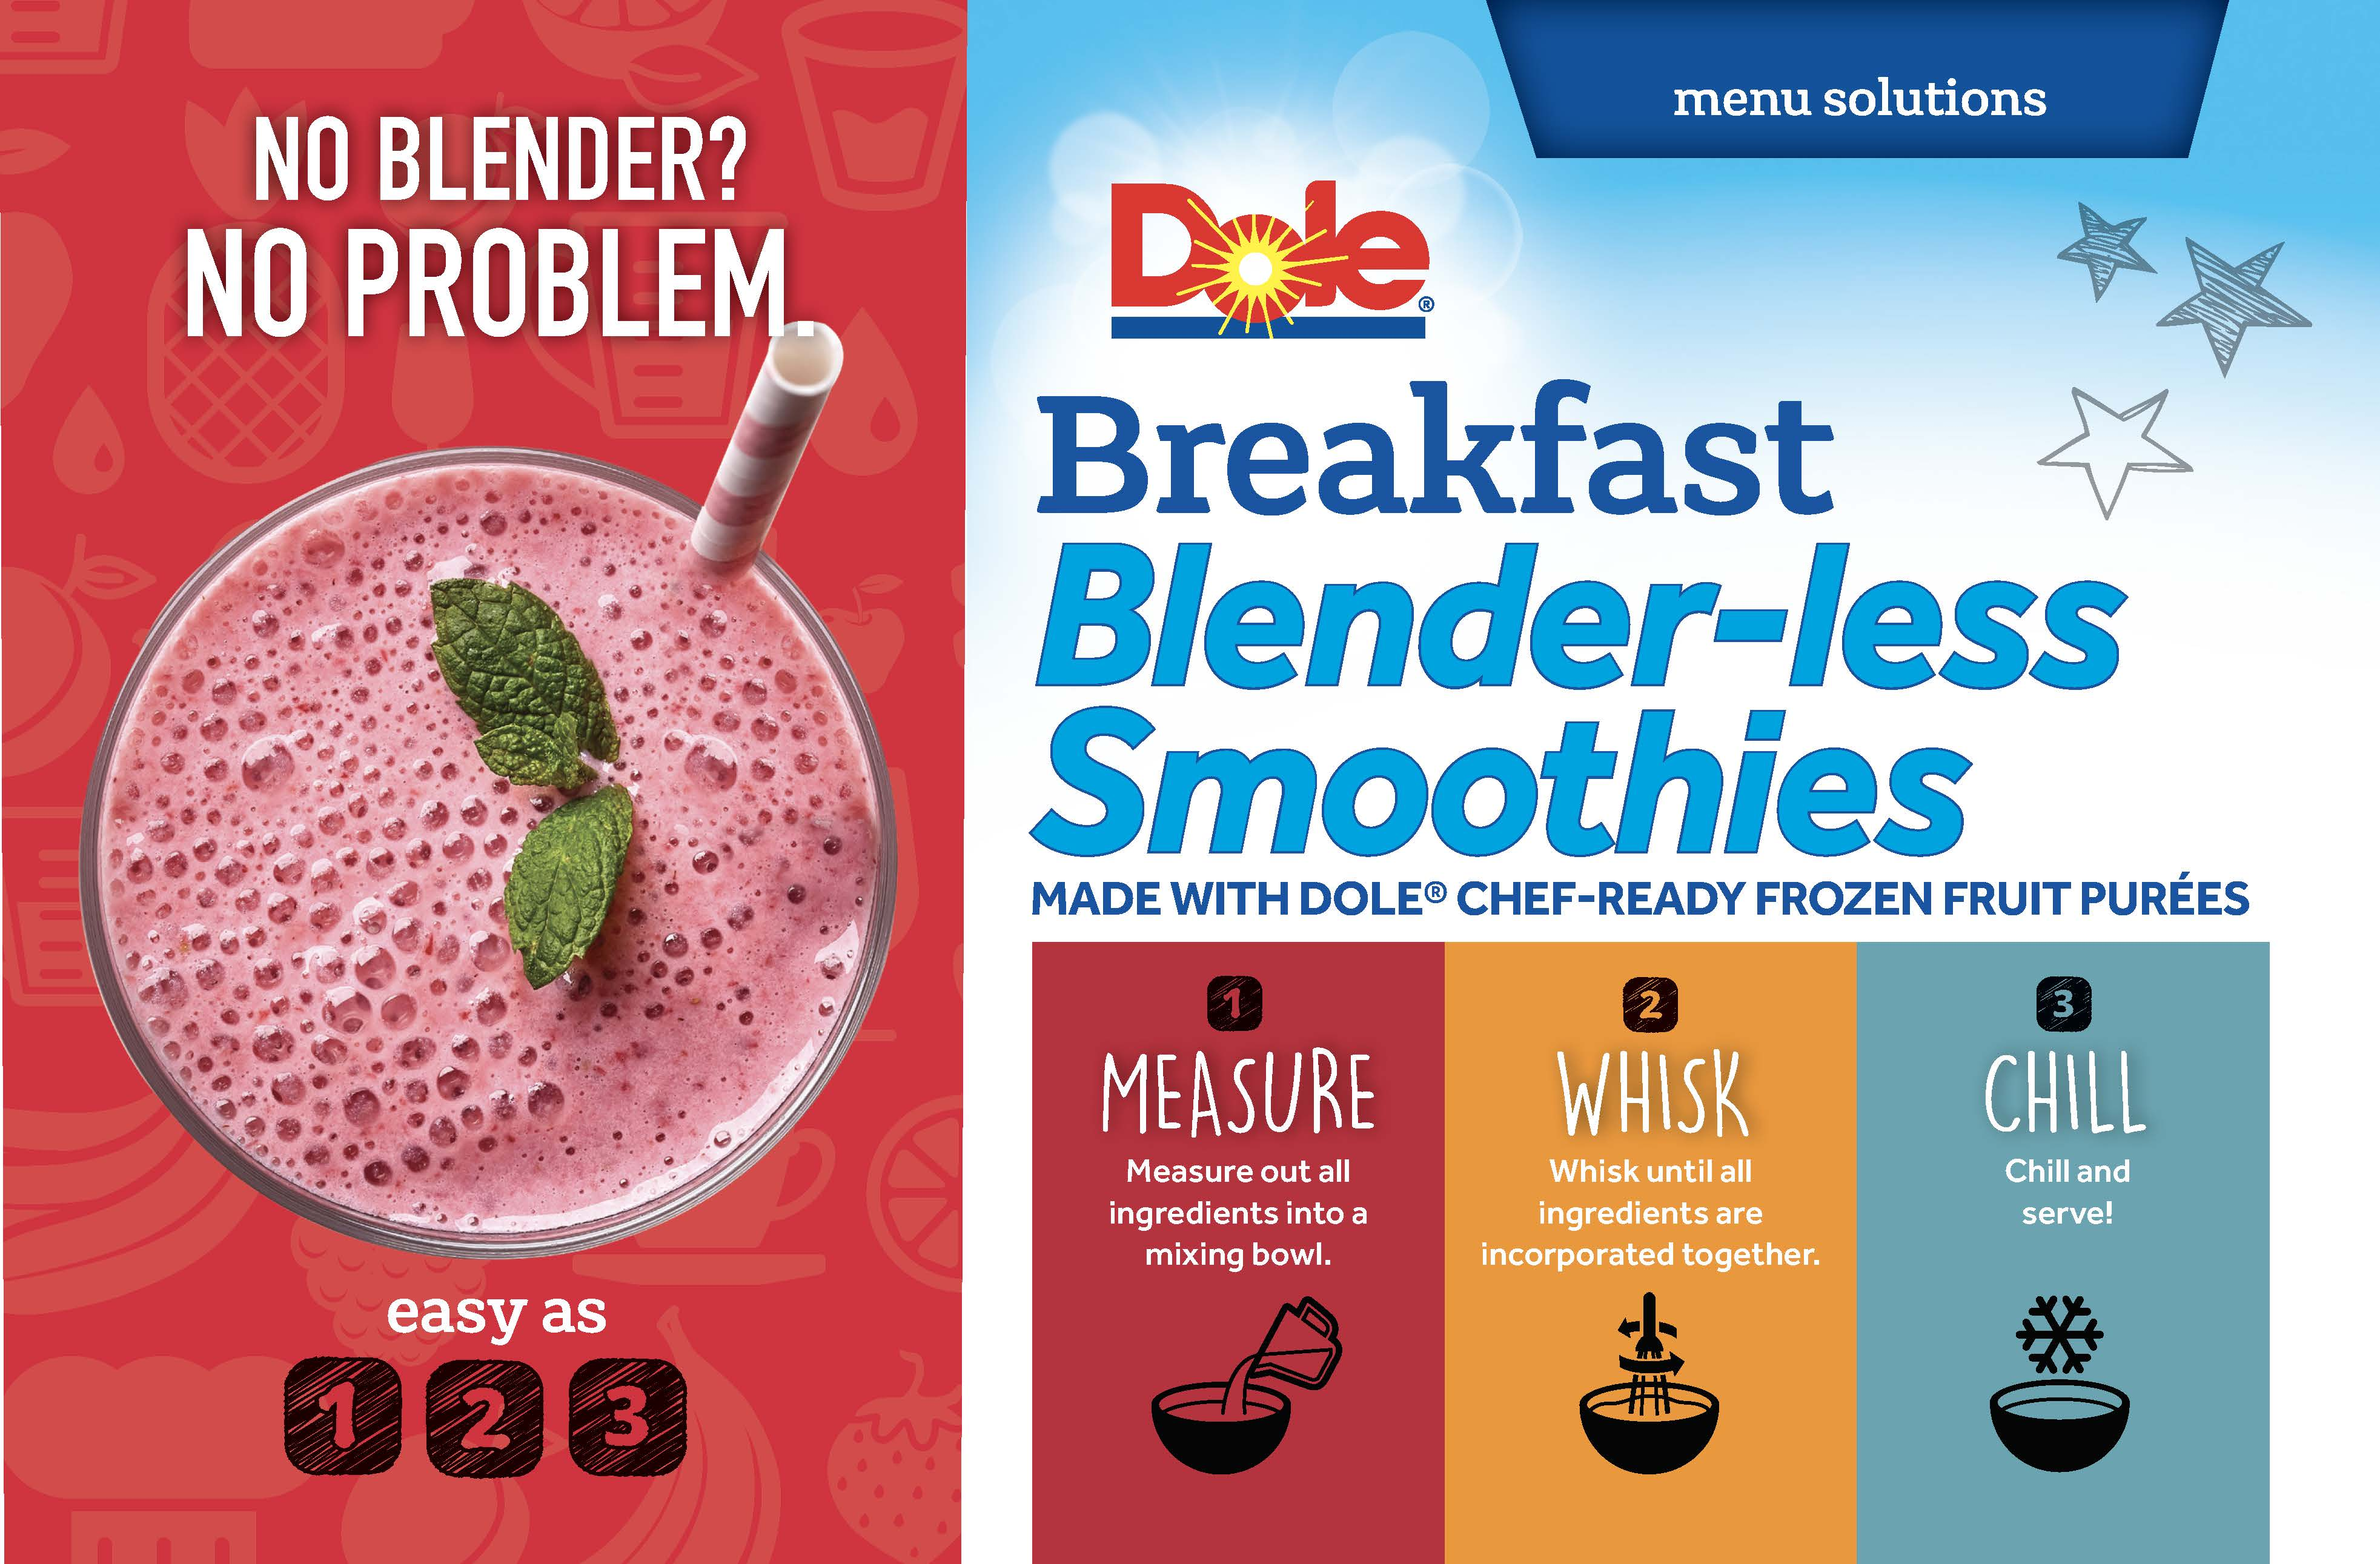 Dole breakfast blenderless smoothie page 1 a8sga3